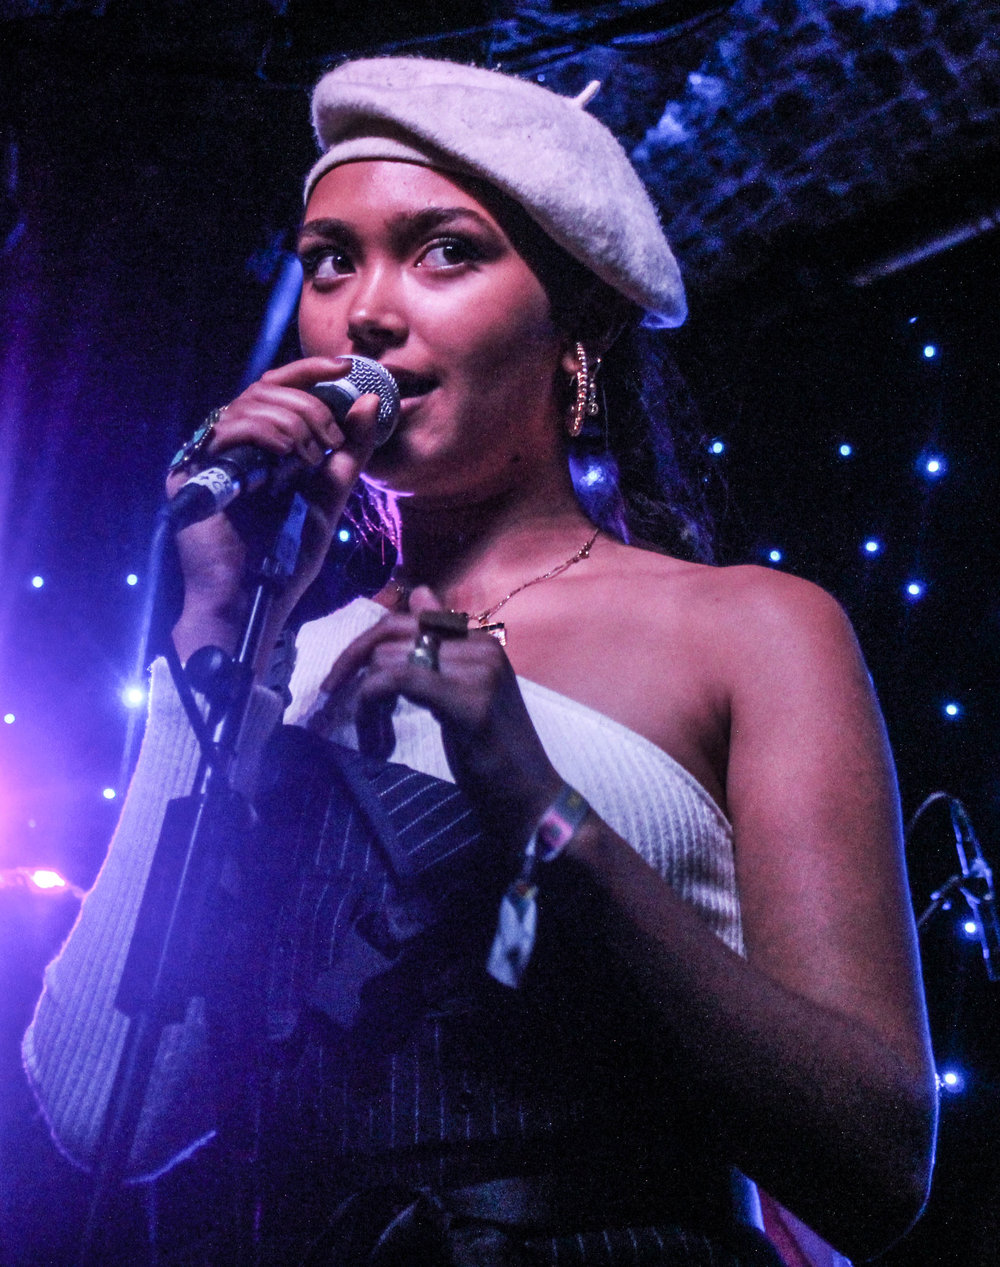 Joy Crookes at The Great Escape - Photo © Concentus Music